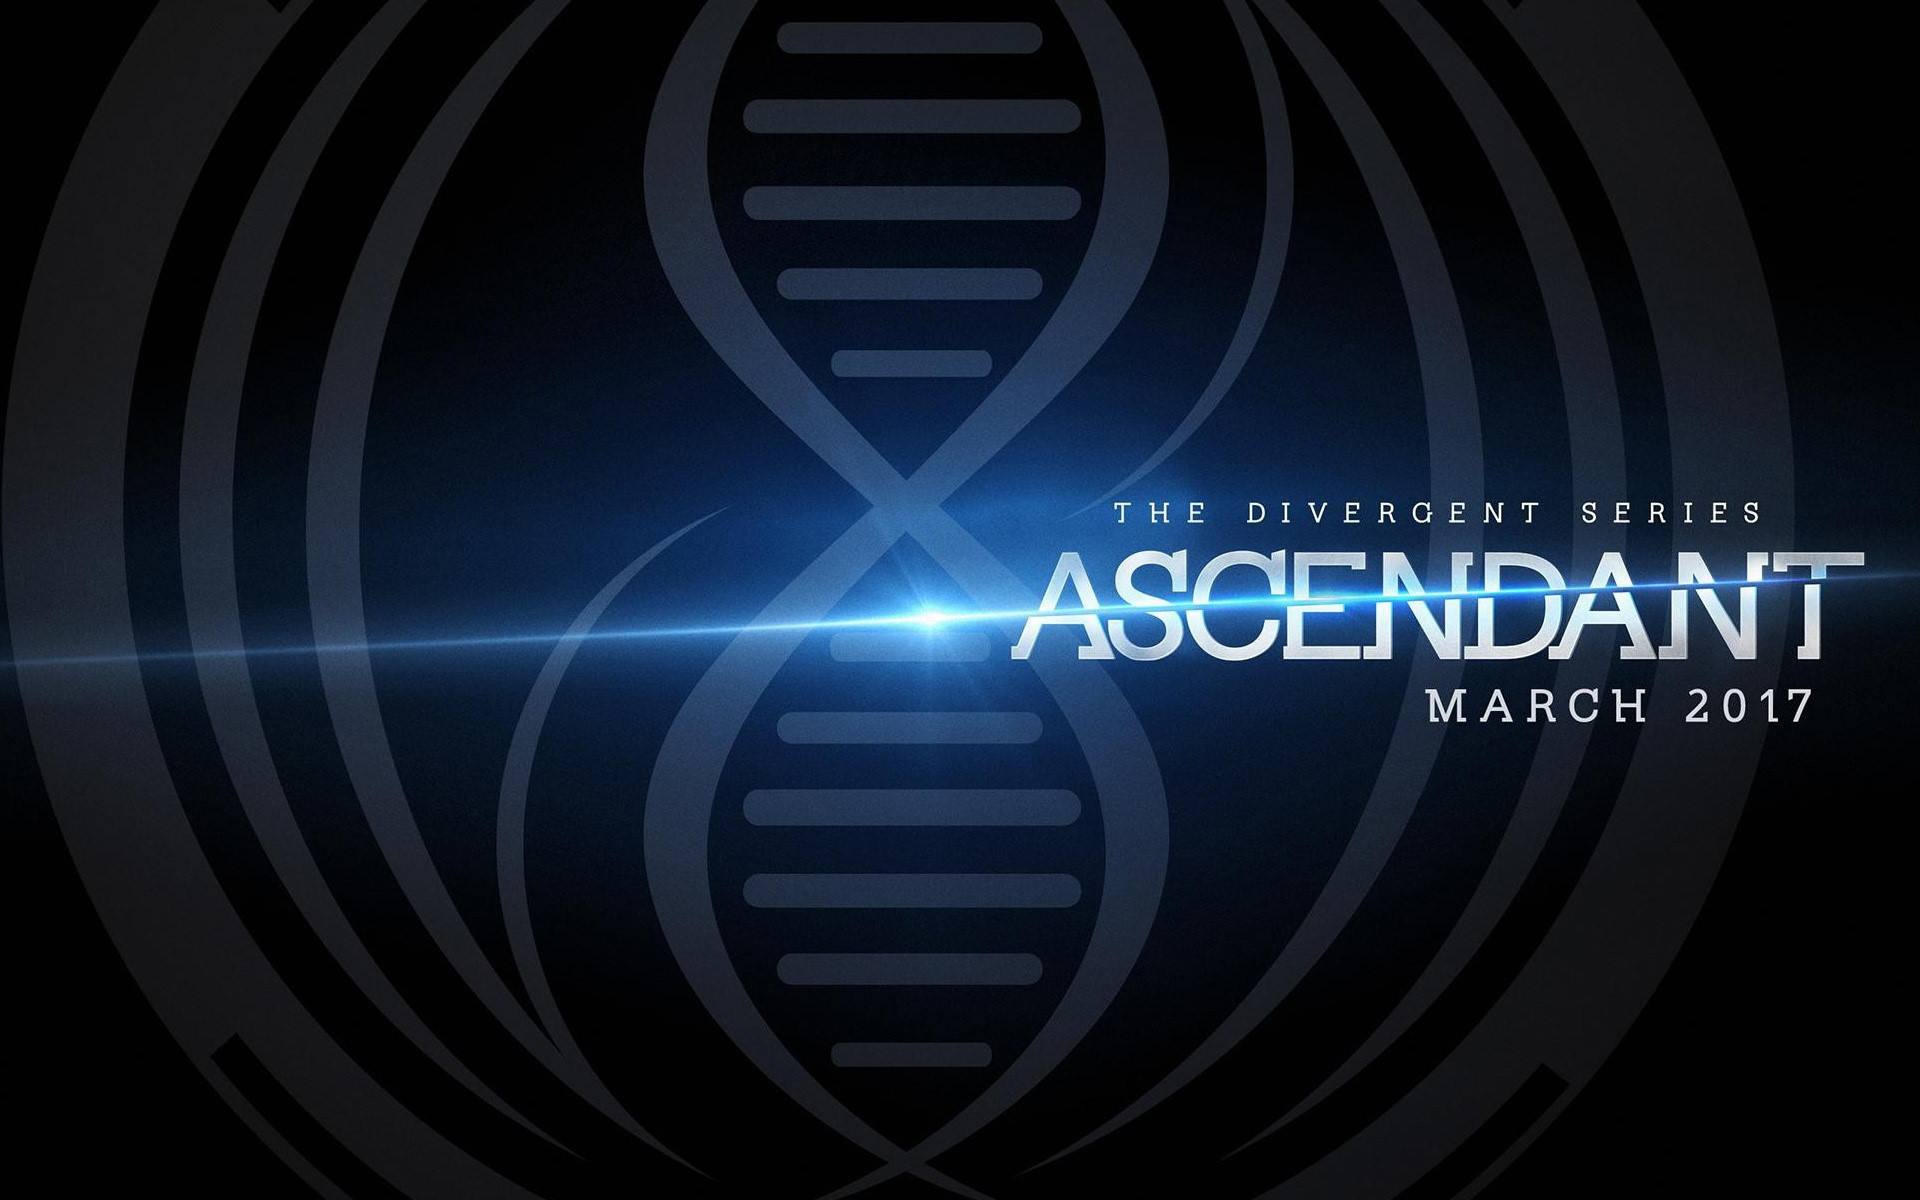 Wallpaper Divergent Ascendant